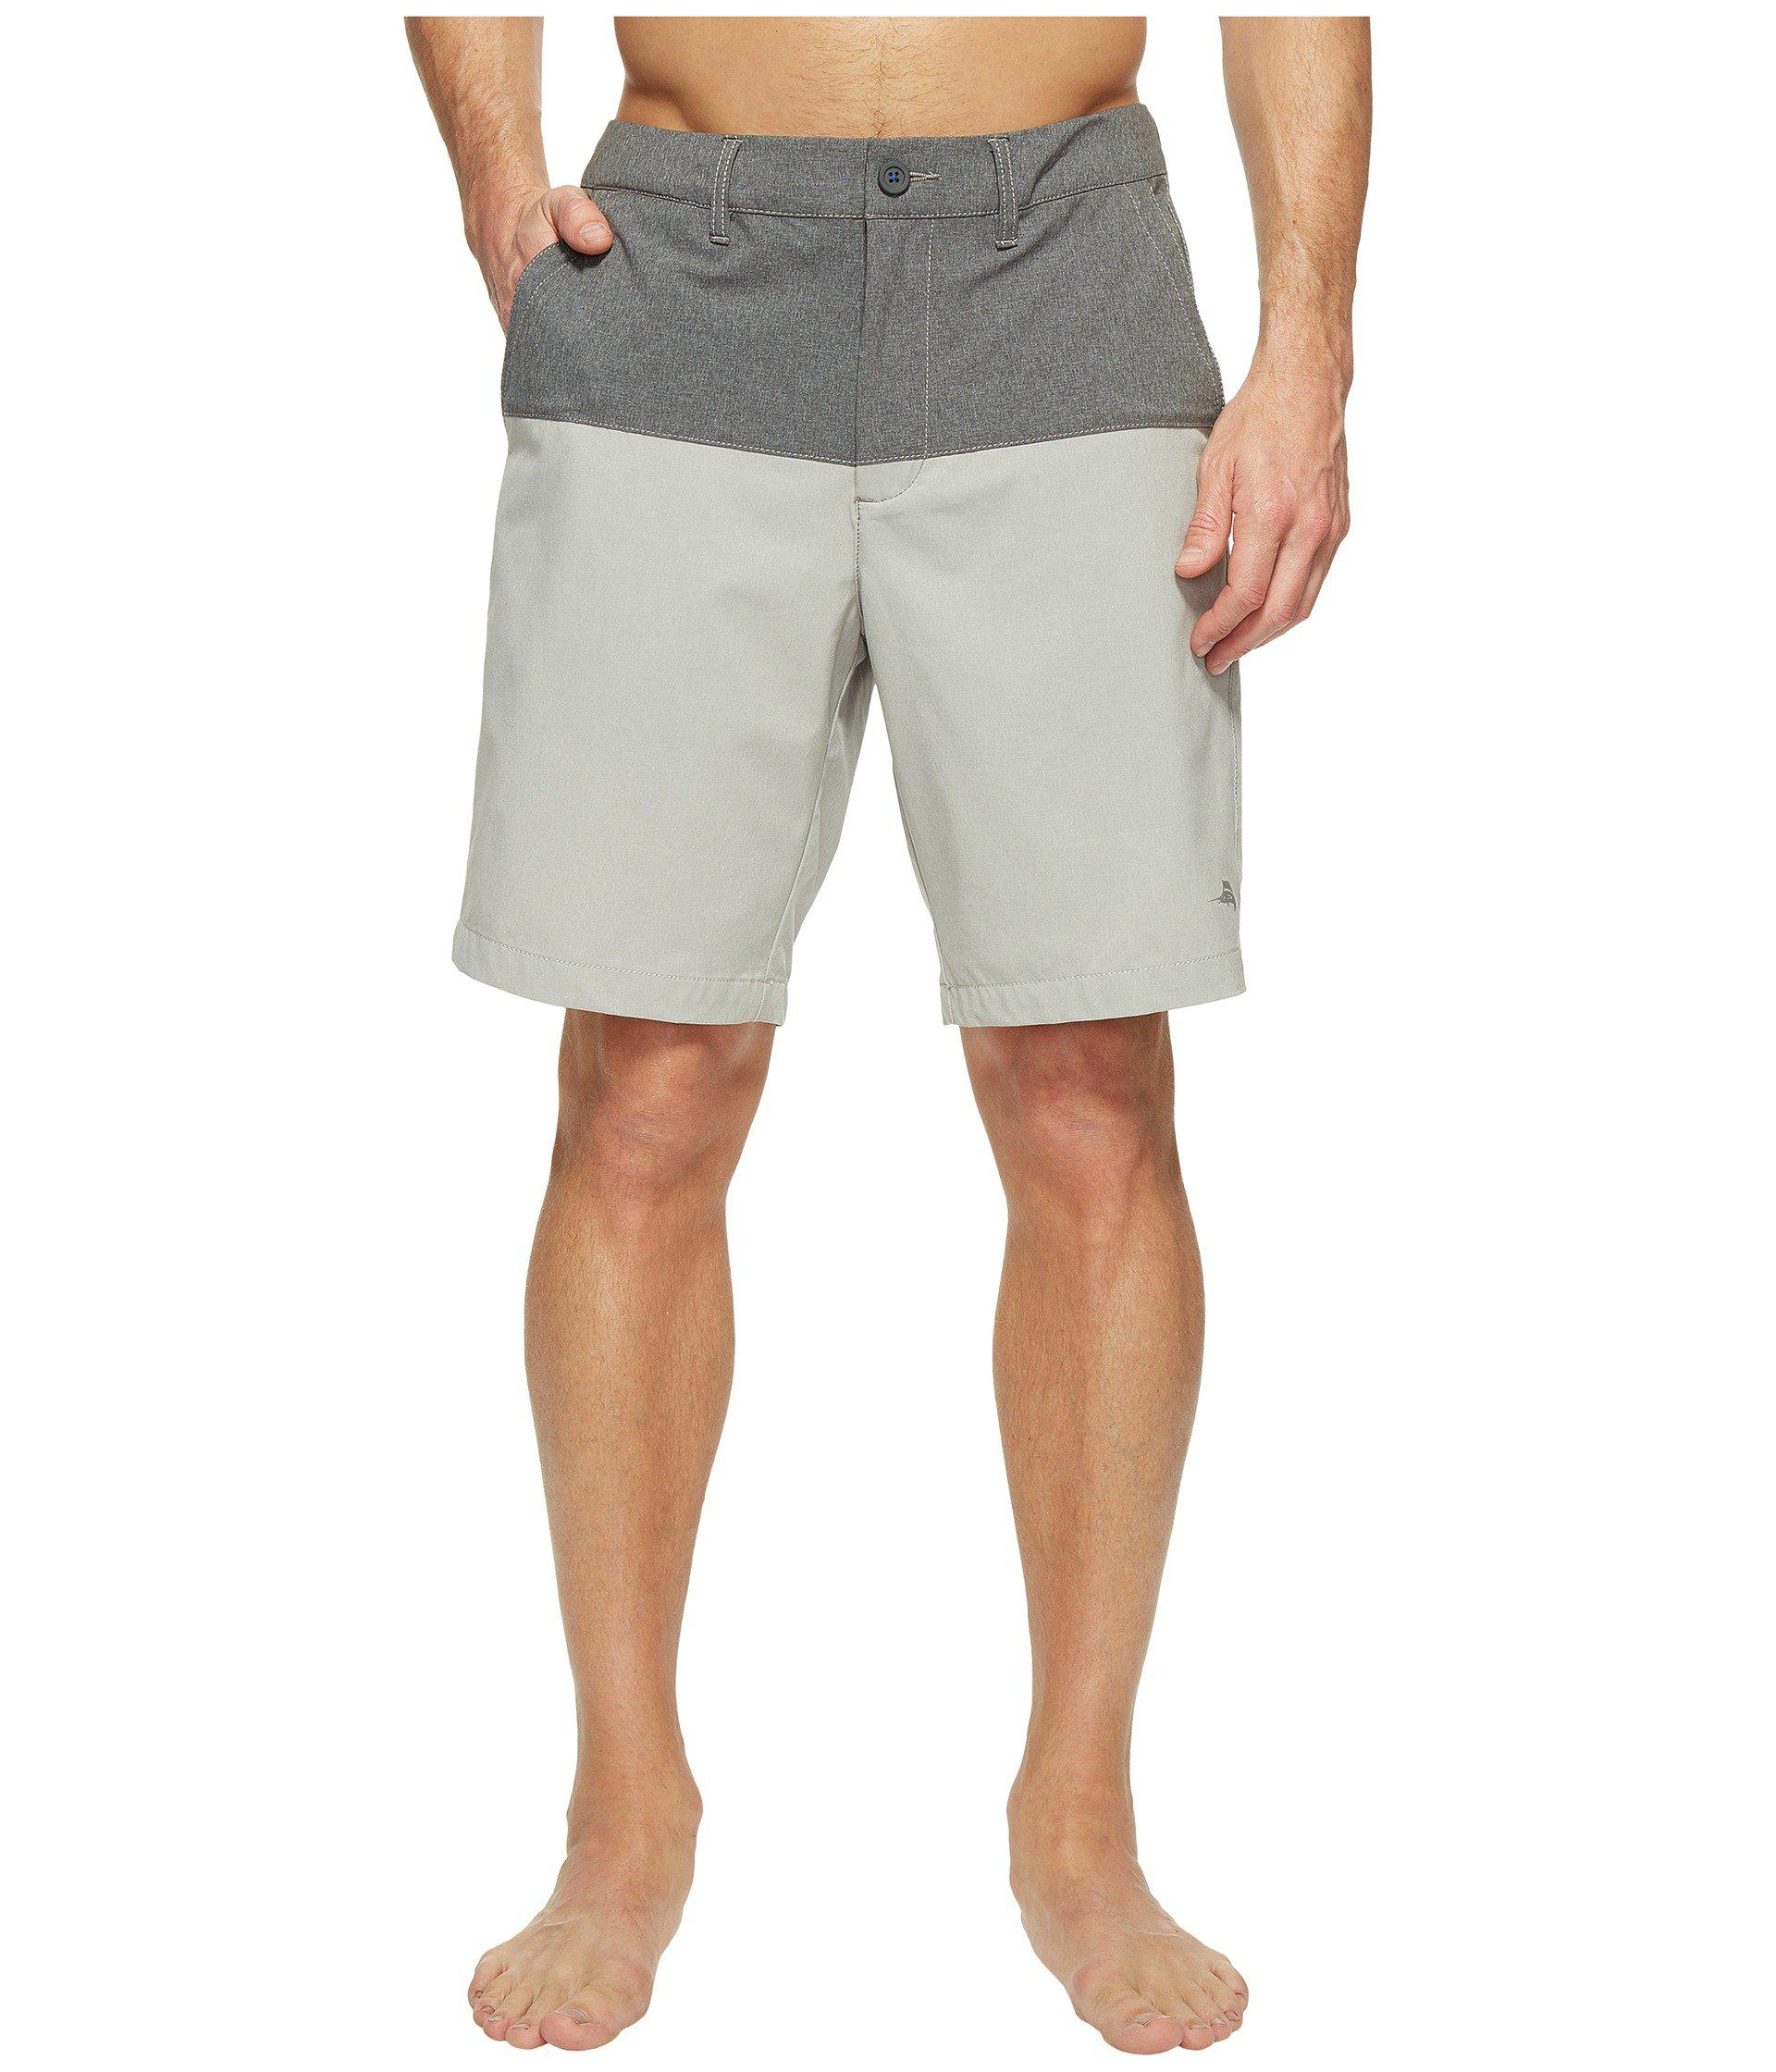 002b7b93fc Lyst - Tommy Bahama Cayman Block And Roll Swim Trunk in Gray for Men ...